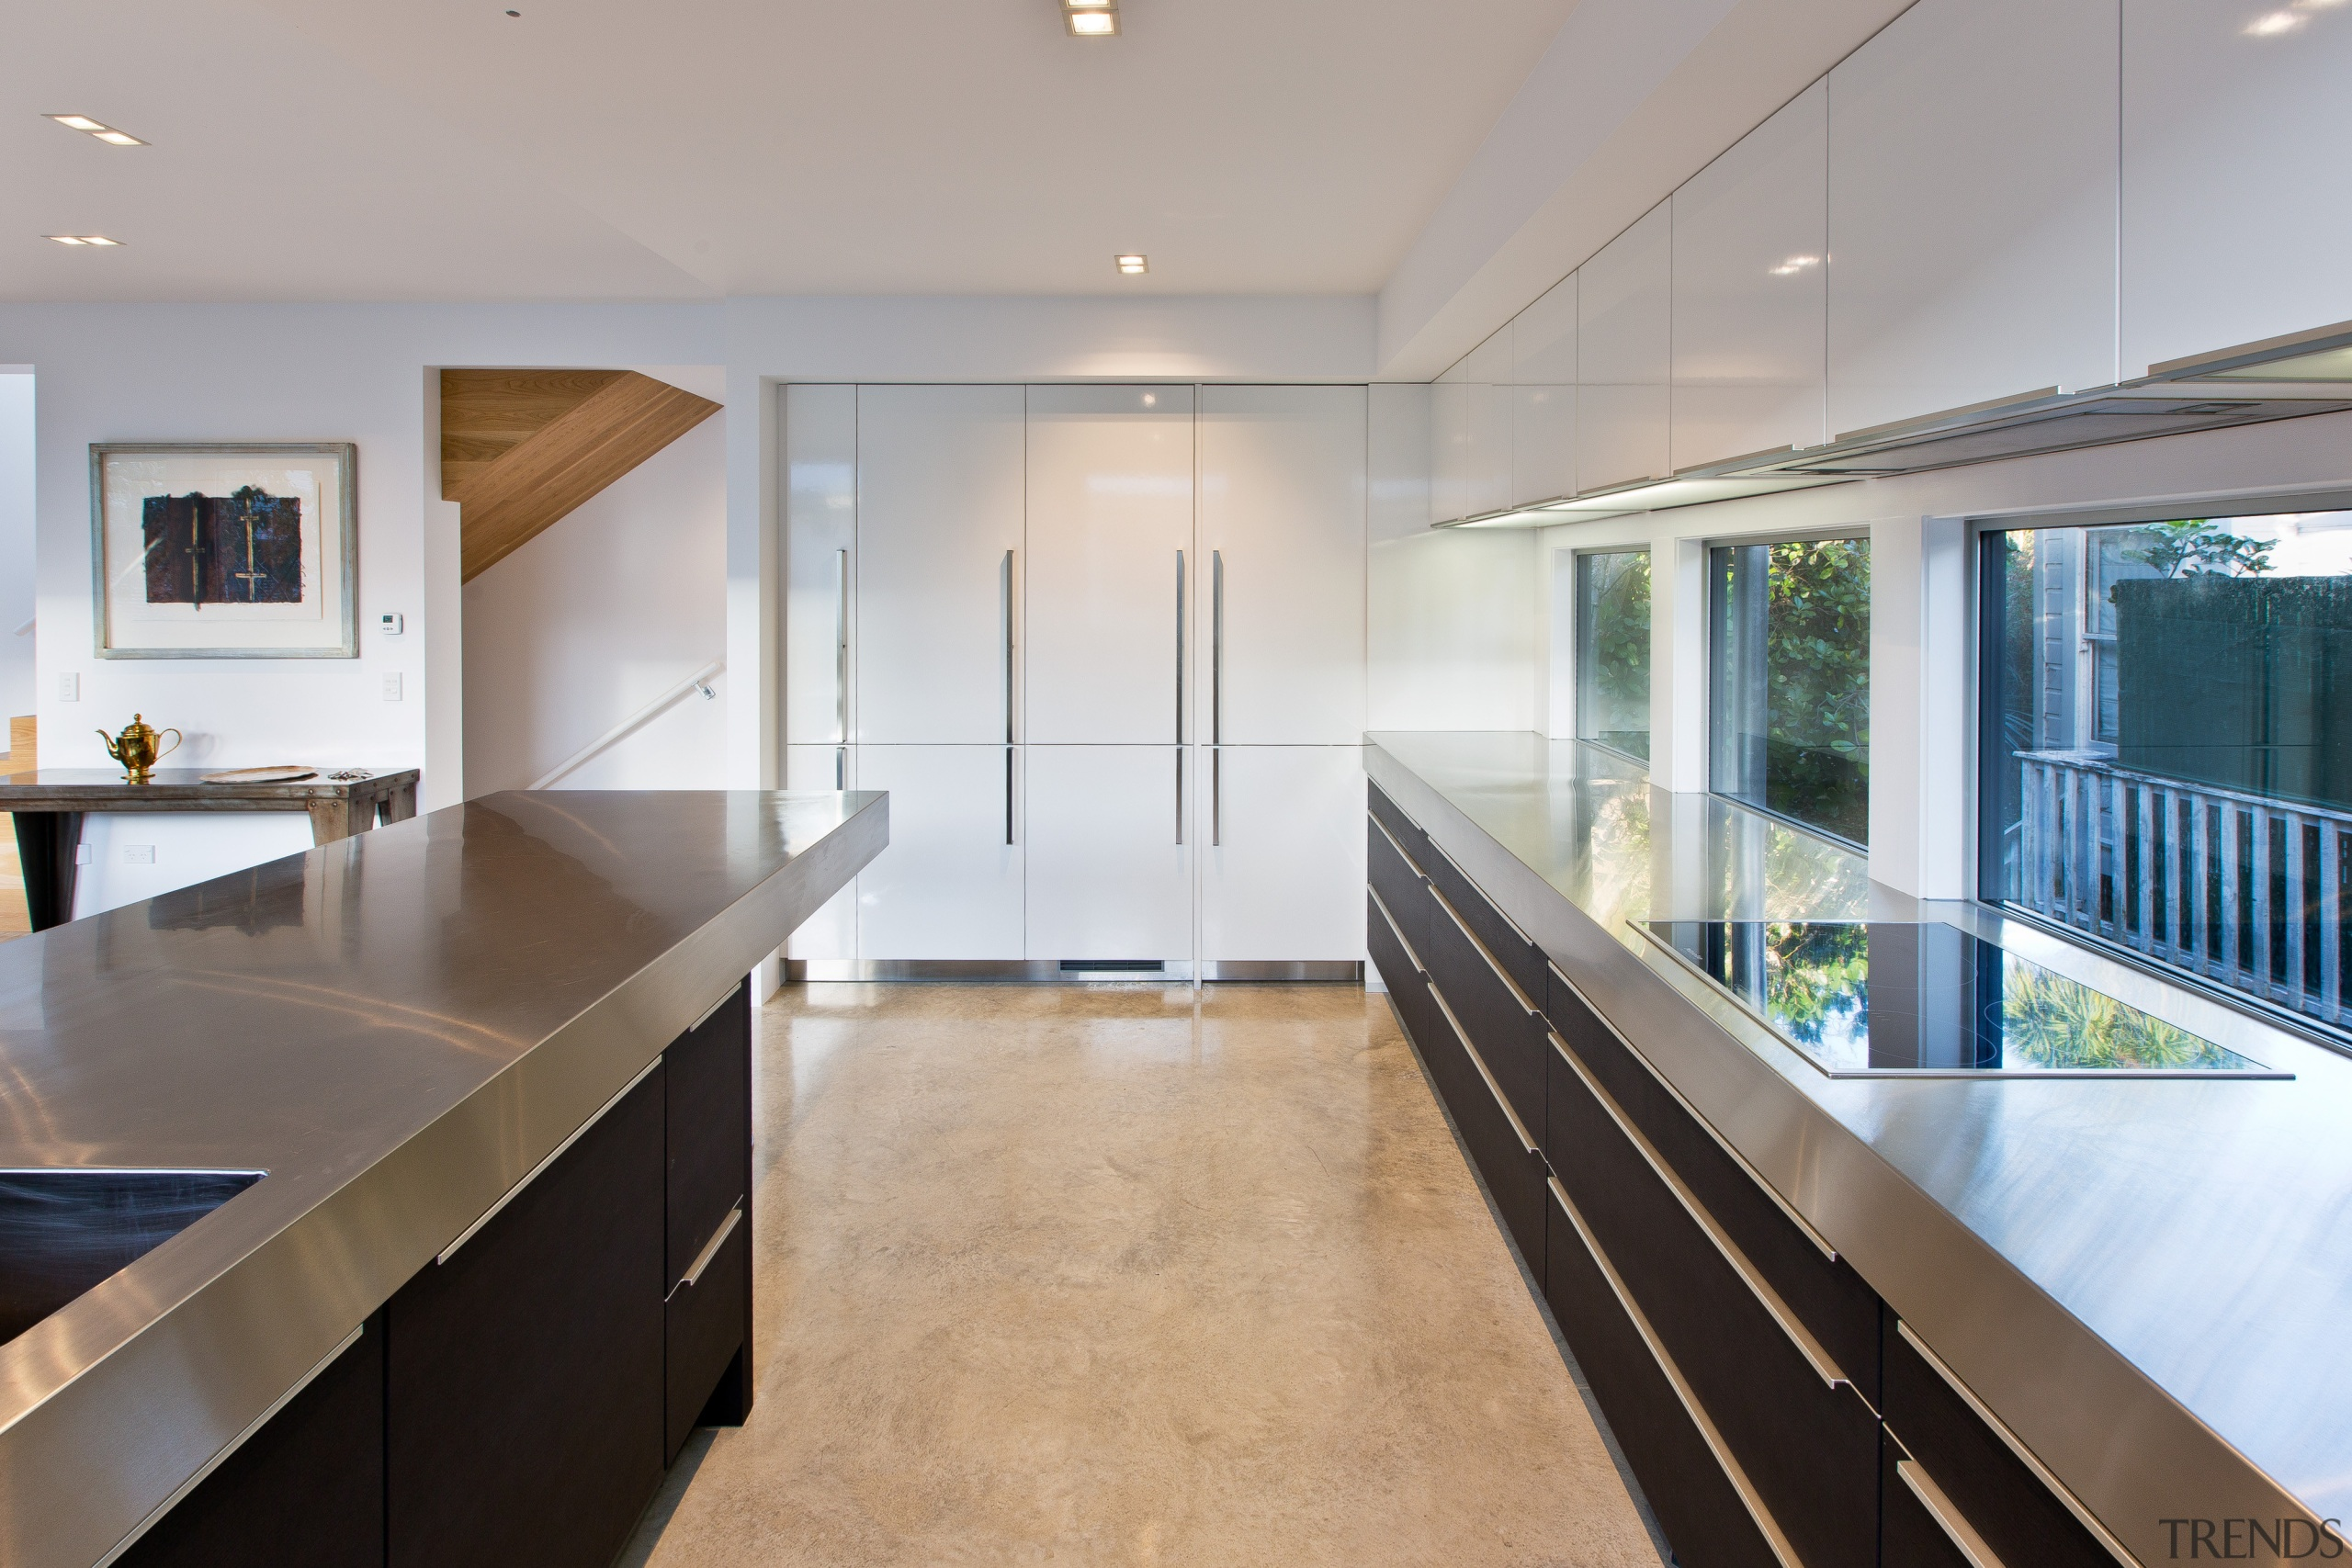 Designer for this project Milvia Hannah of German architecture, countertop, house, interior design, kitchen, real estate, gray